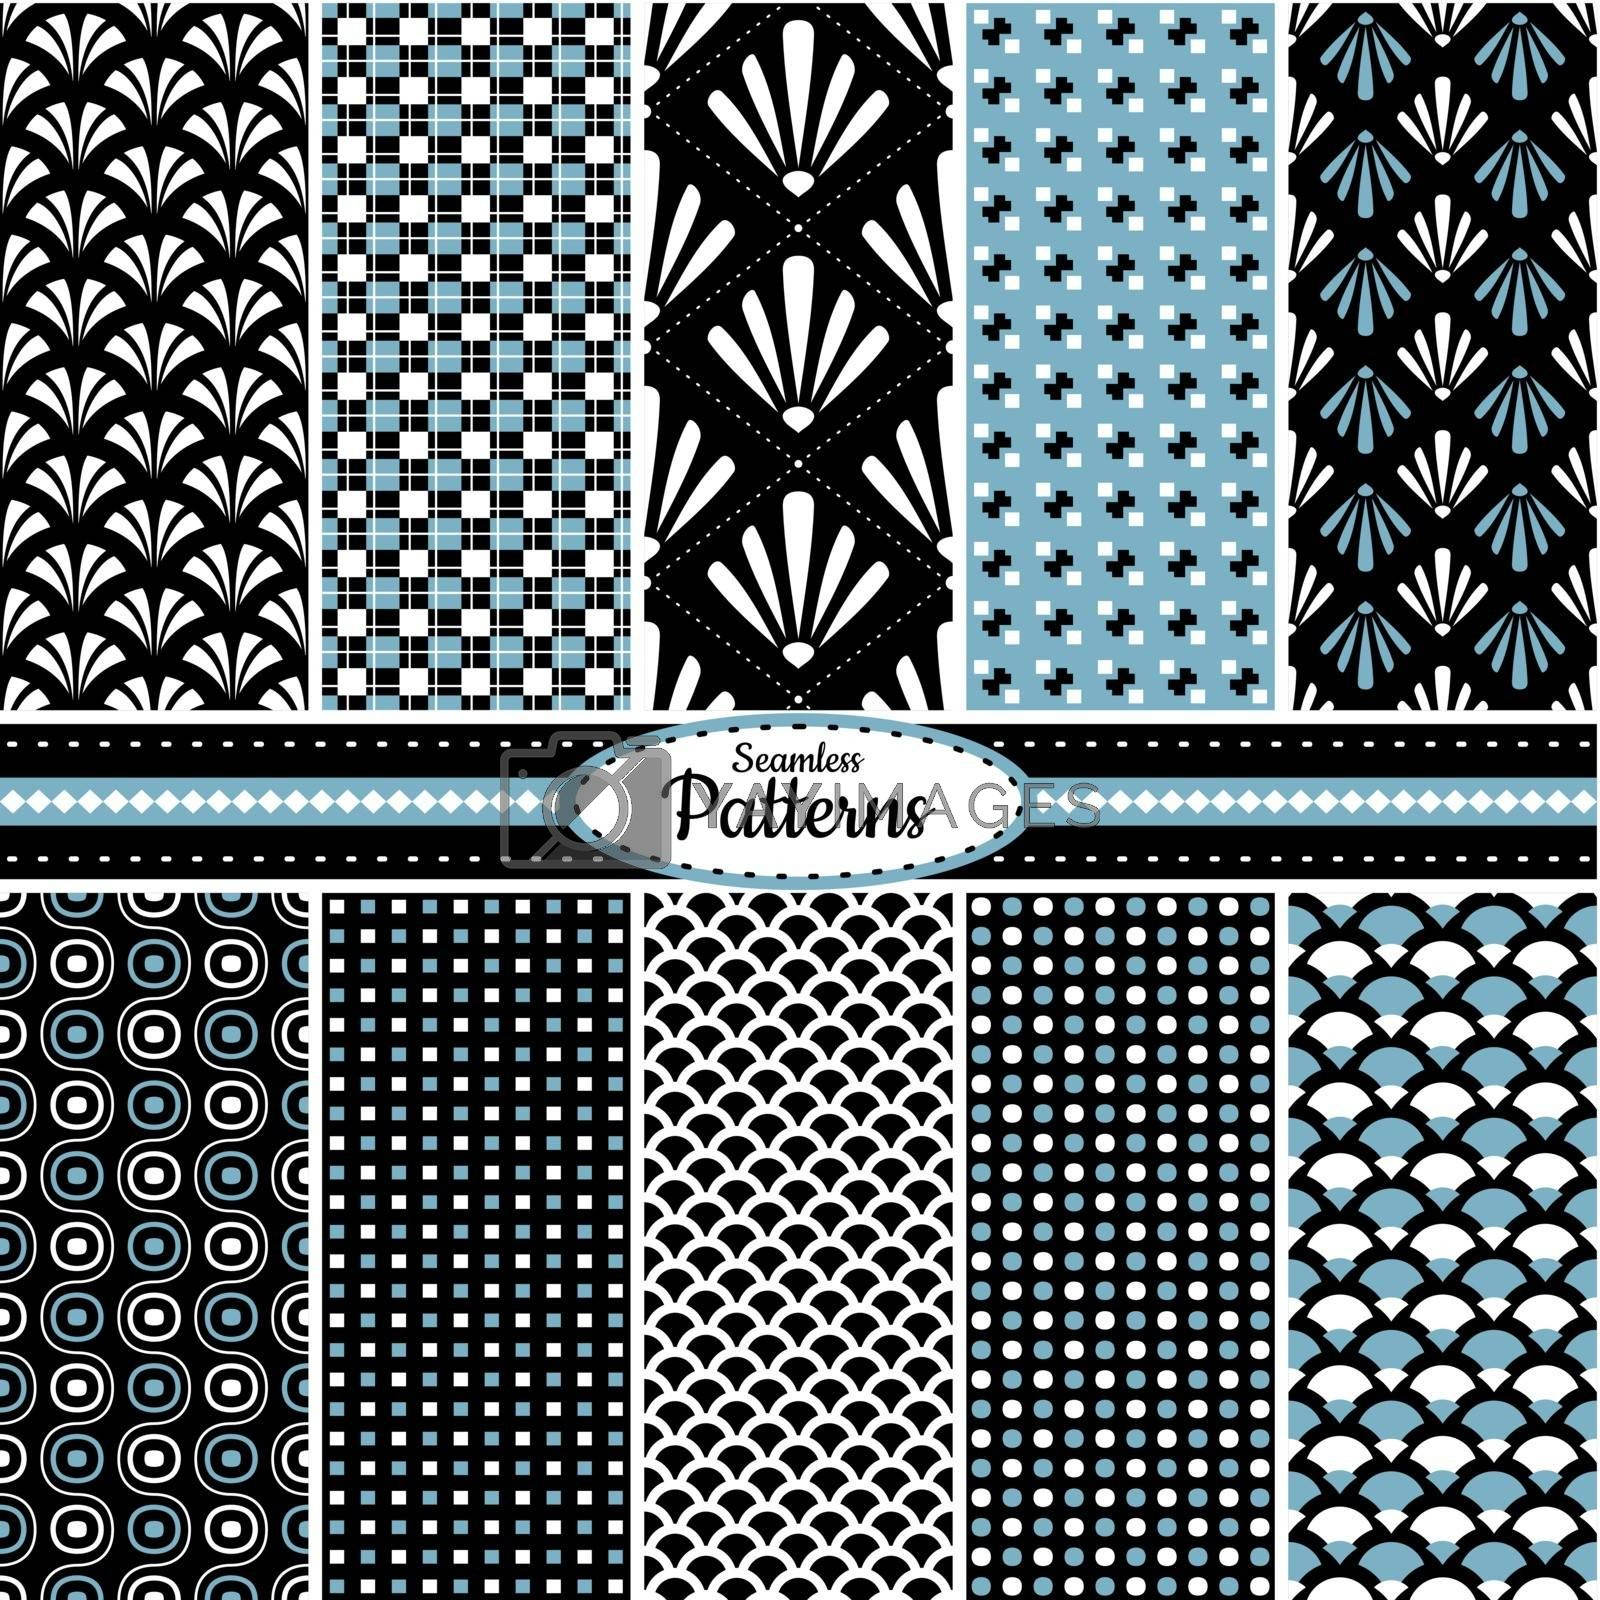 Collection of 10 geometric colorful seamless pattern background. Great for web page backgrounds, wallpapers, interiors, home decor, apparel, etc.Vector file includes pattern swatch for each pattern.